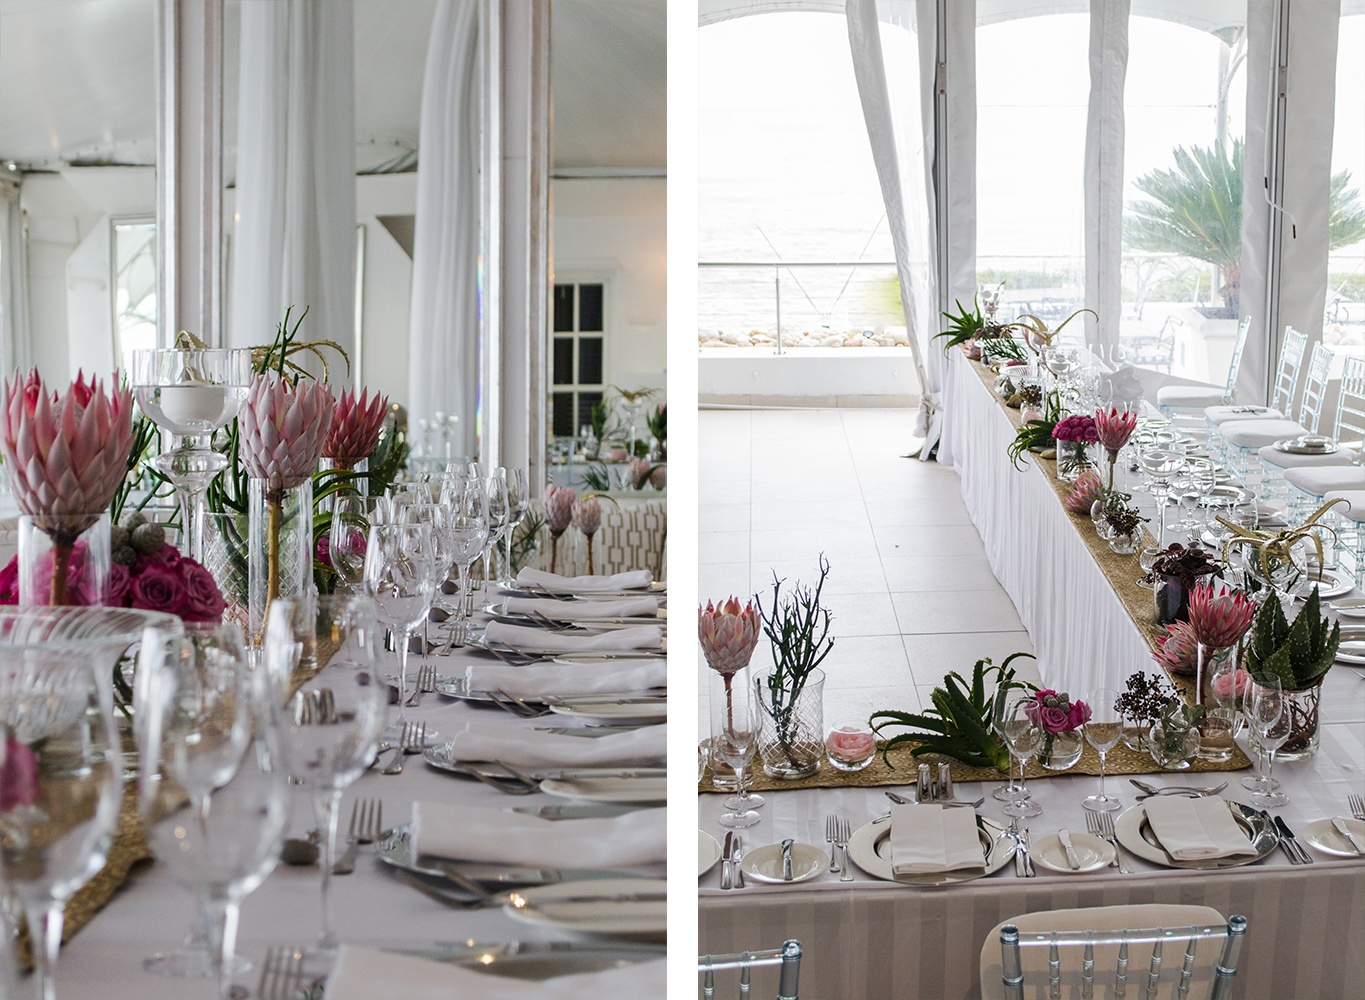 lux-african-wedding-decor-cape-town_2 - Sorrento Events